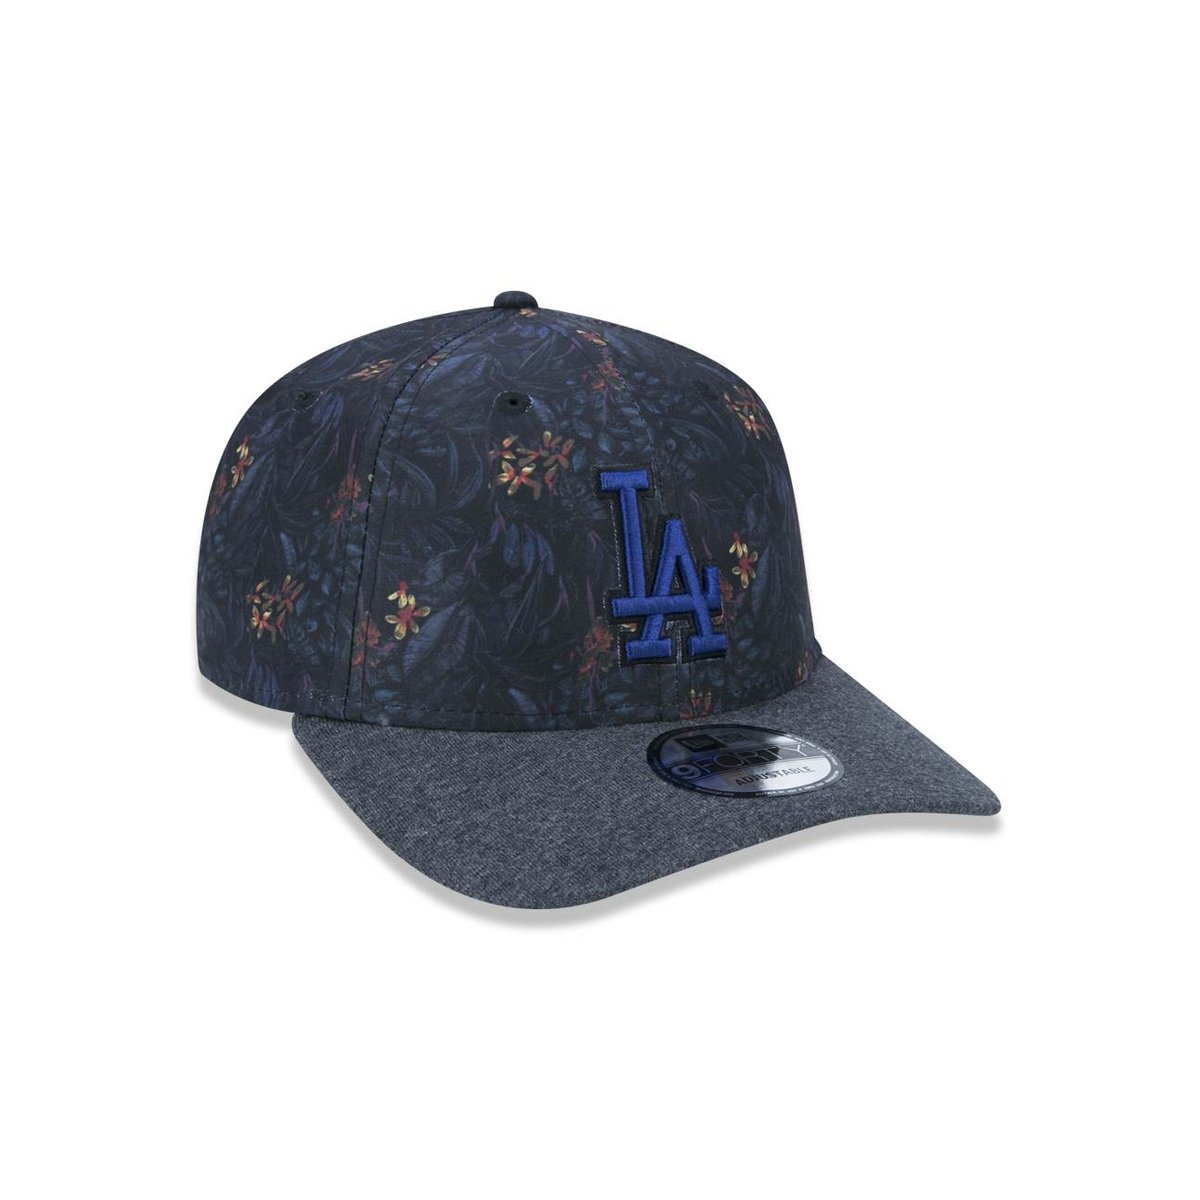 Boné 940 Los Angeles Dodgers MLB Aba Curva Snapback New Era - Compre ... e467483389c